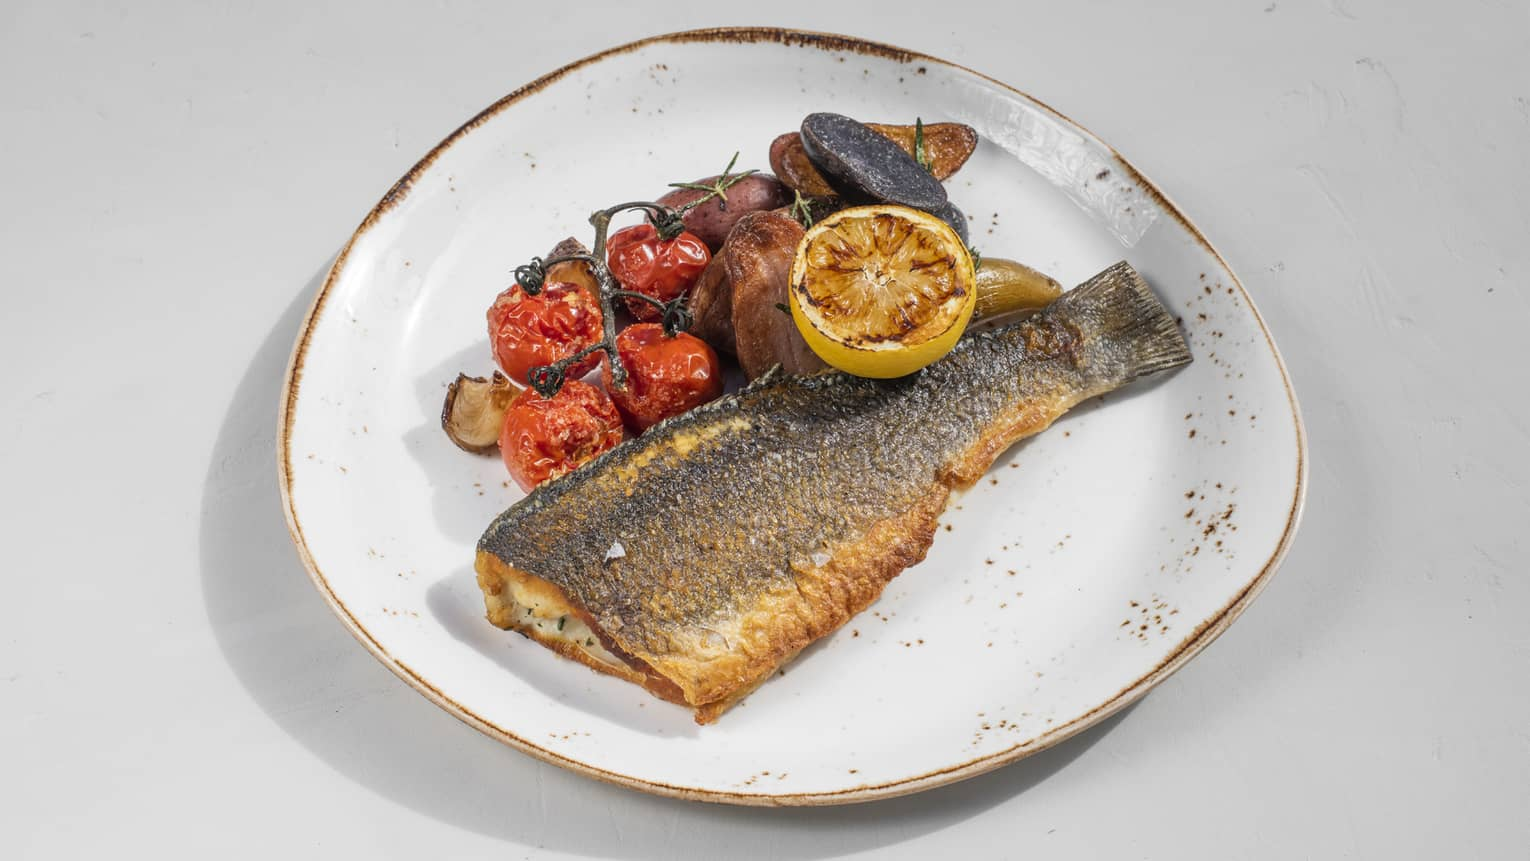 Seared whole fish with roasted tomatoes on the vine, vegetables